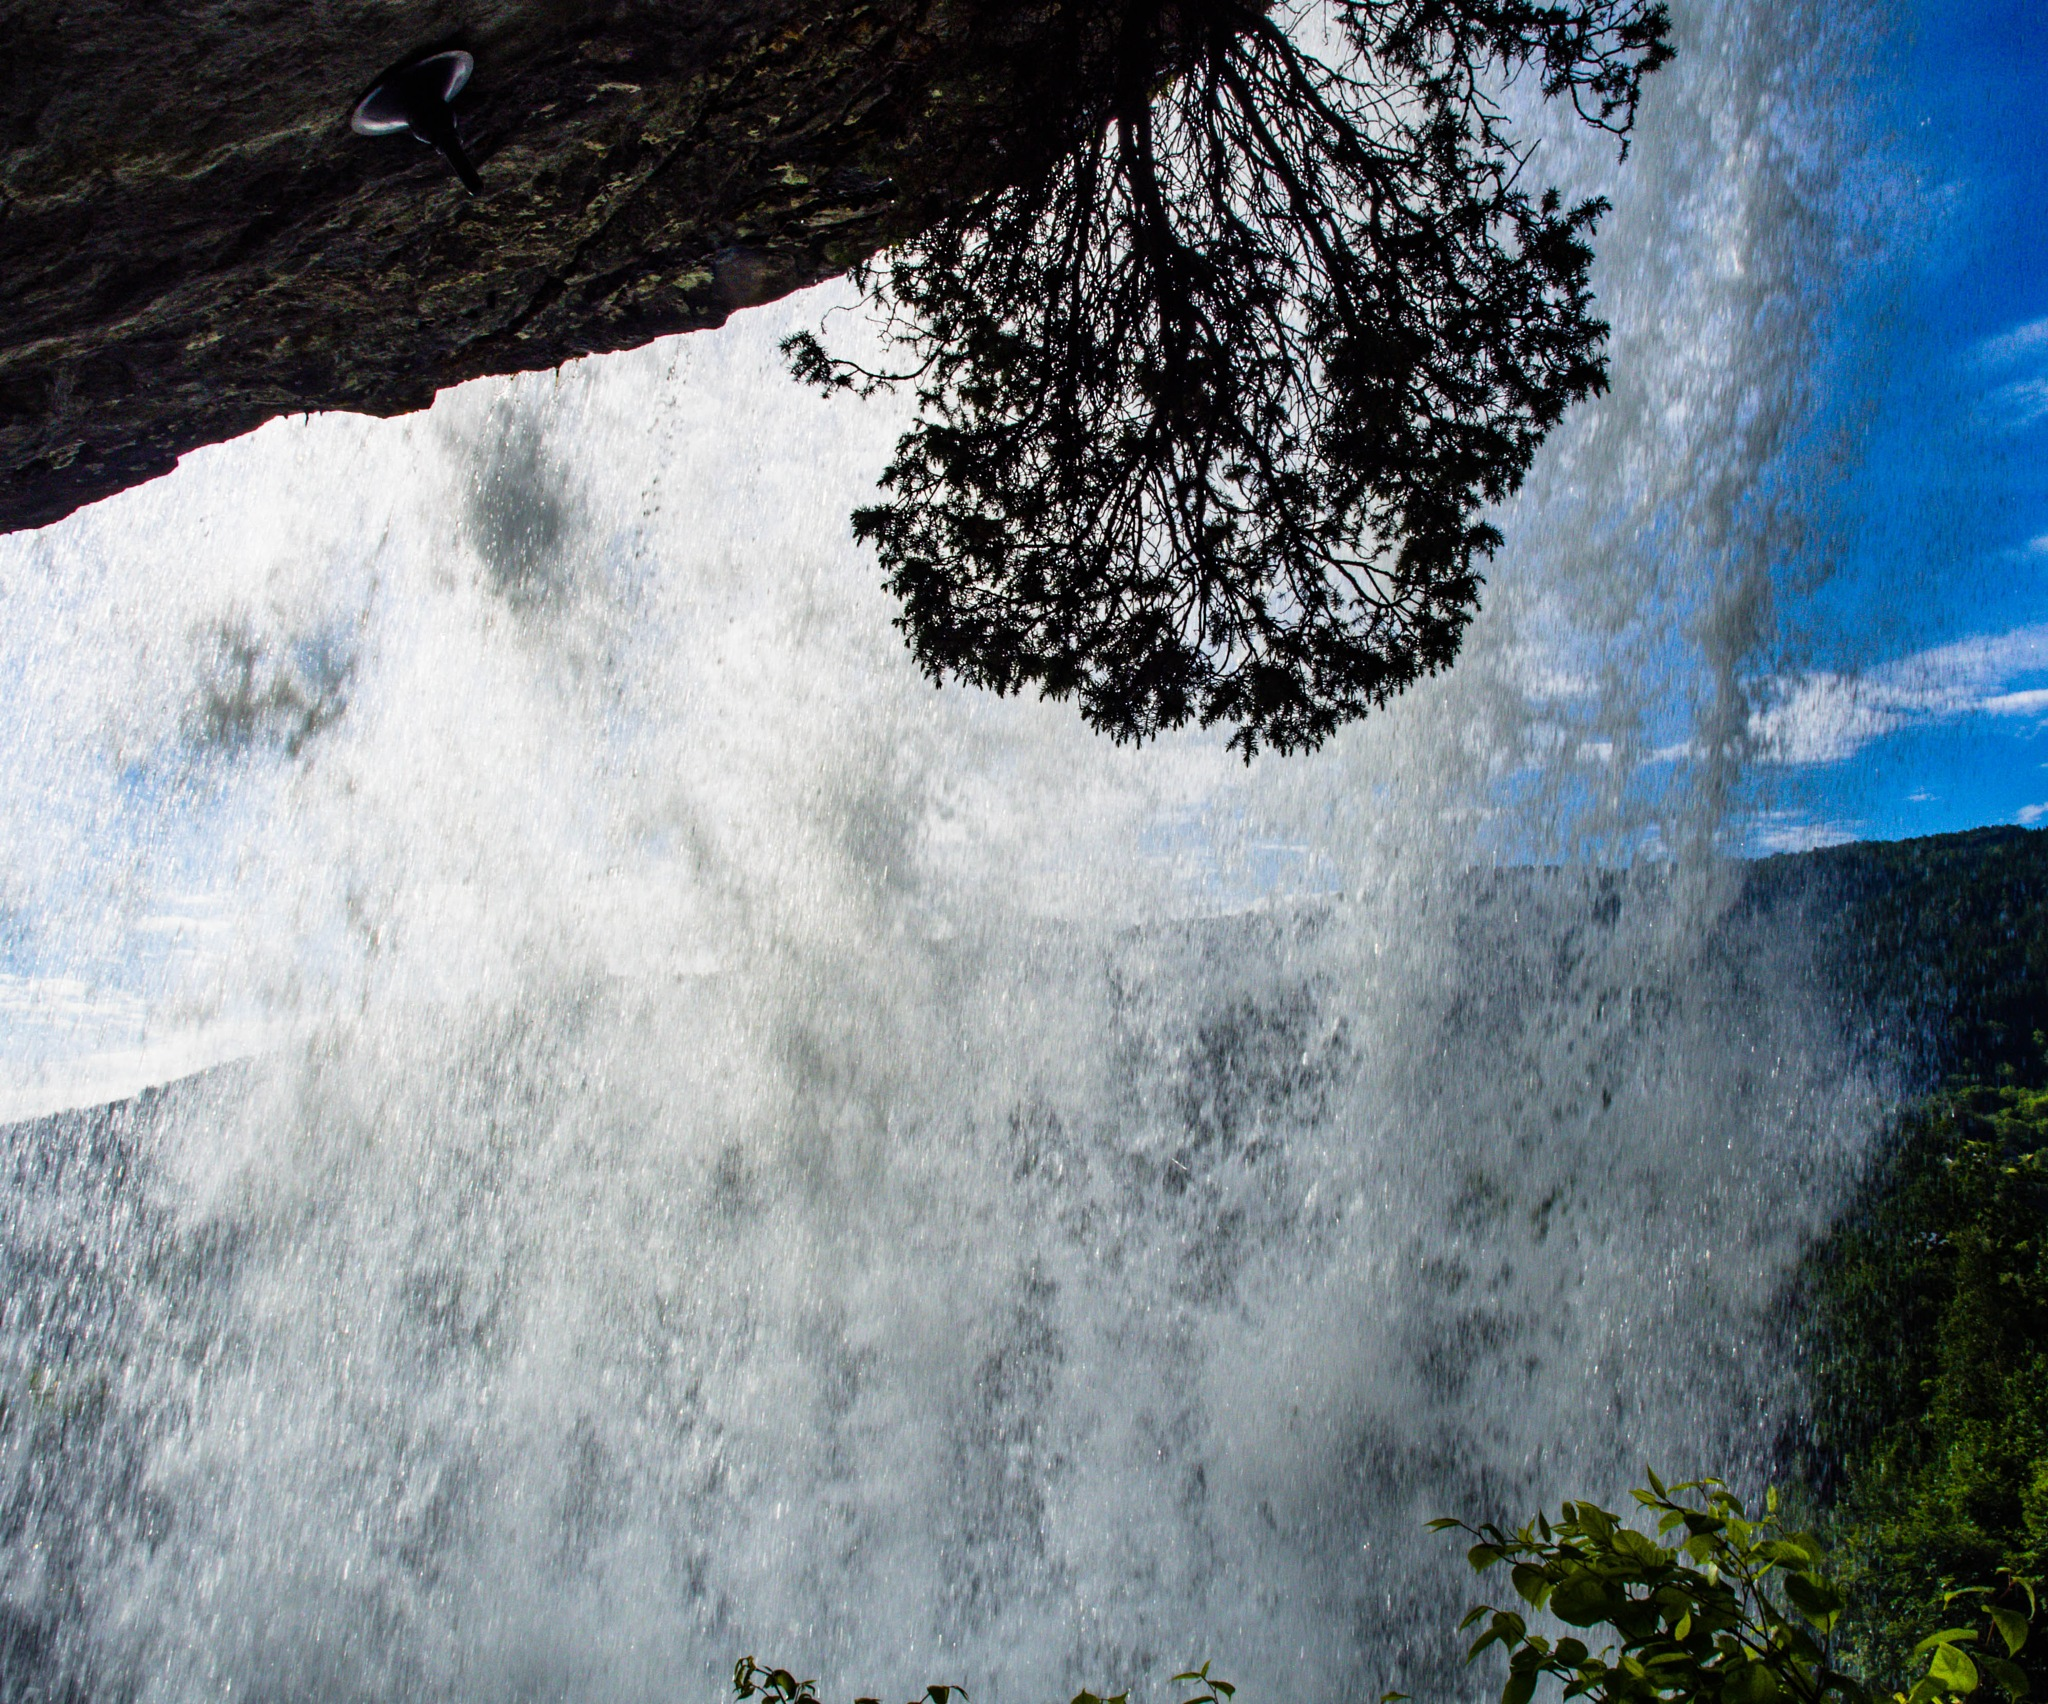 Behind the waterfall by Thore's photo